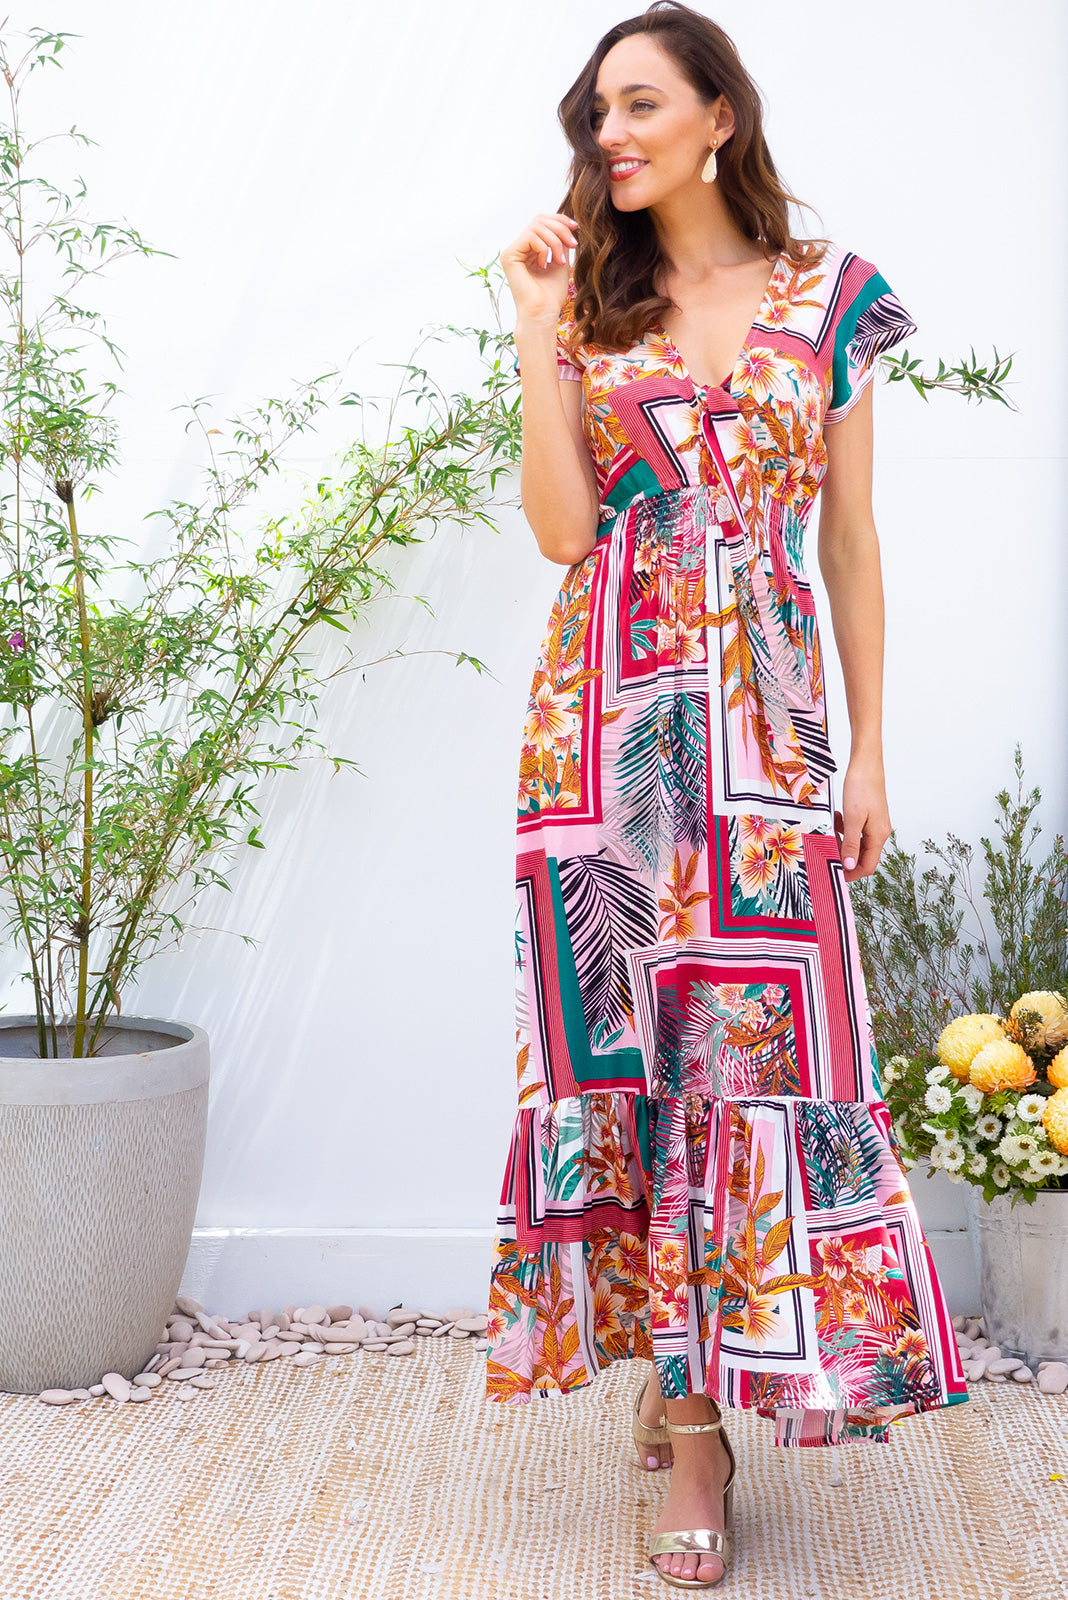 Nellie Cartagena Red Maxi Dress Maxi dress features elasticated empire line with a cap sleeve and deep v neck the fabric is a soft woven rayon in retro inspired resort wear print based